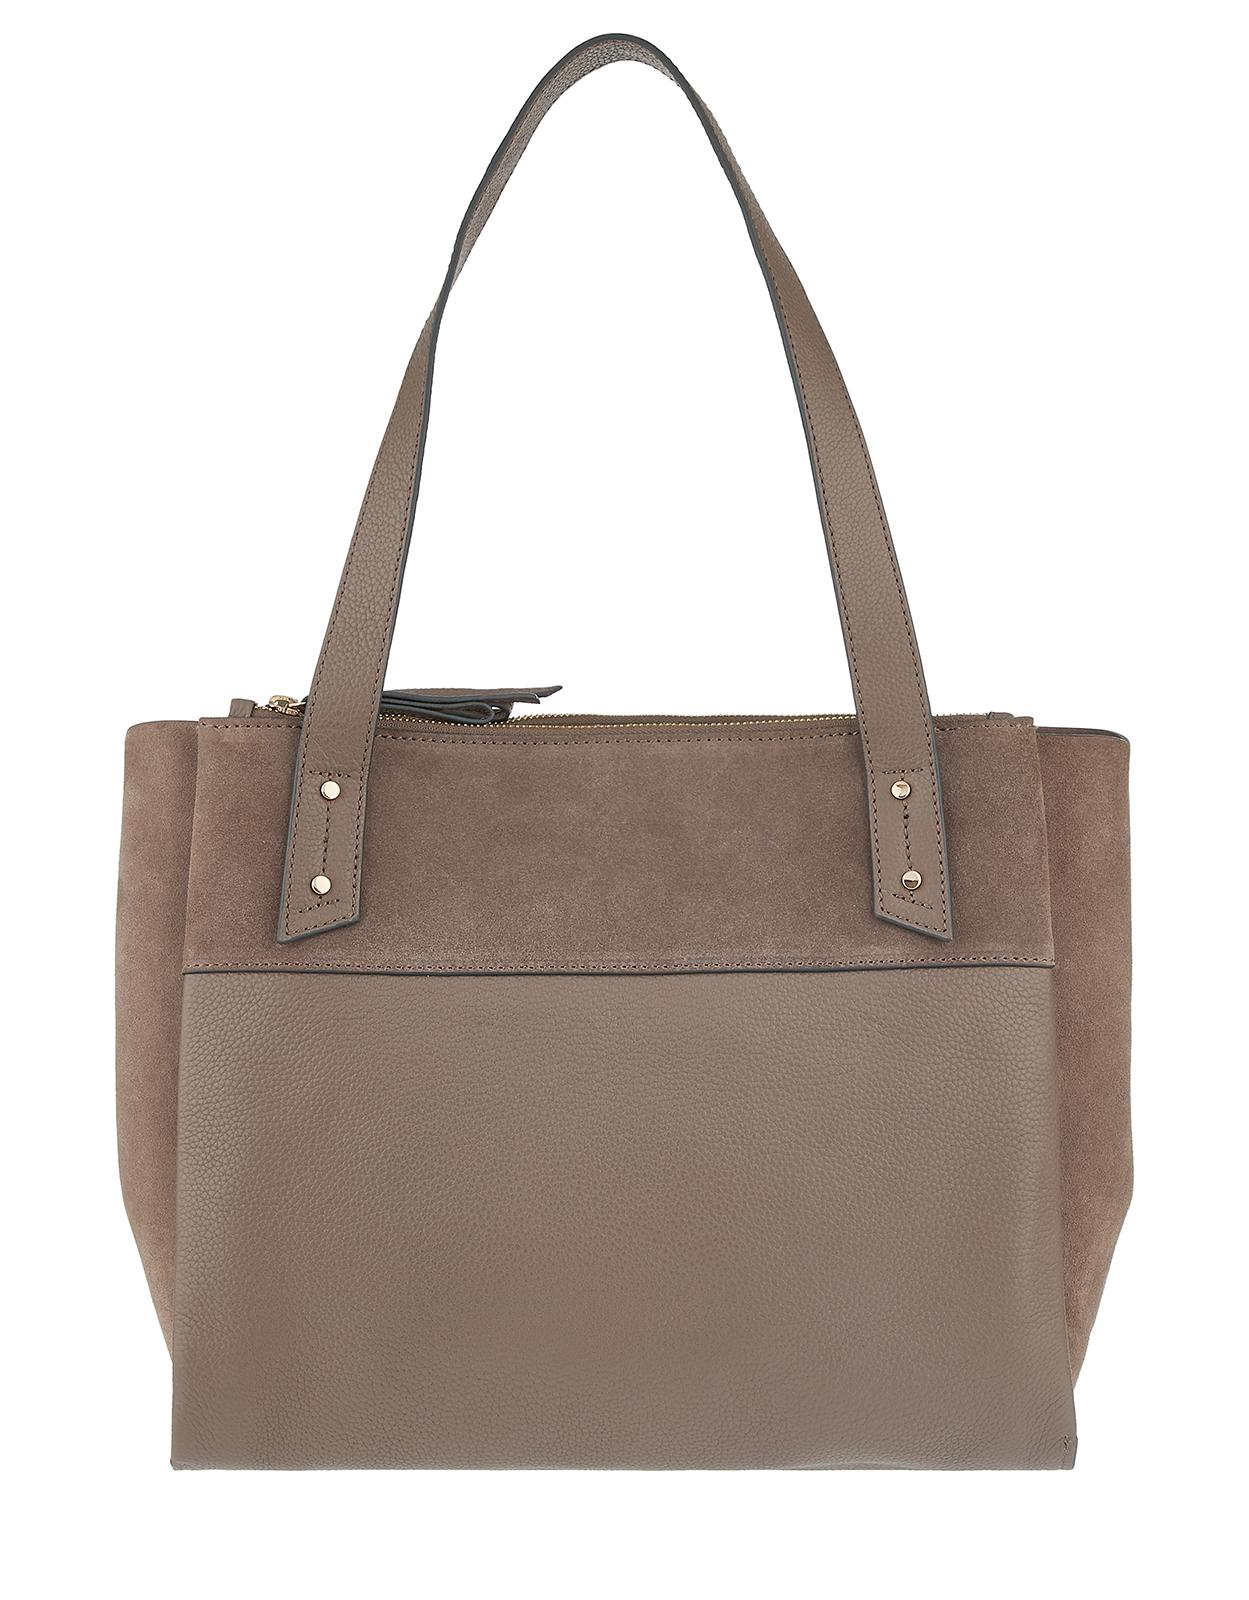 e324a6d973 Accessorize Drew Double Zip Leather Work Bag in Brown - Lyst